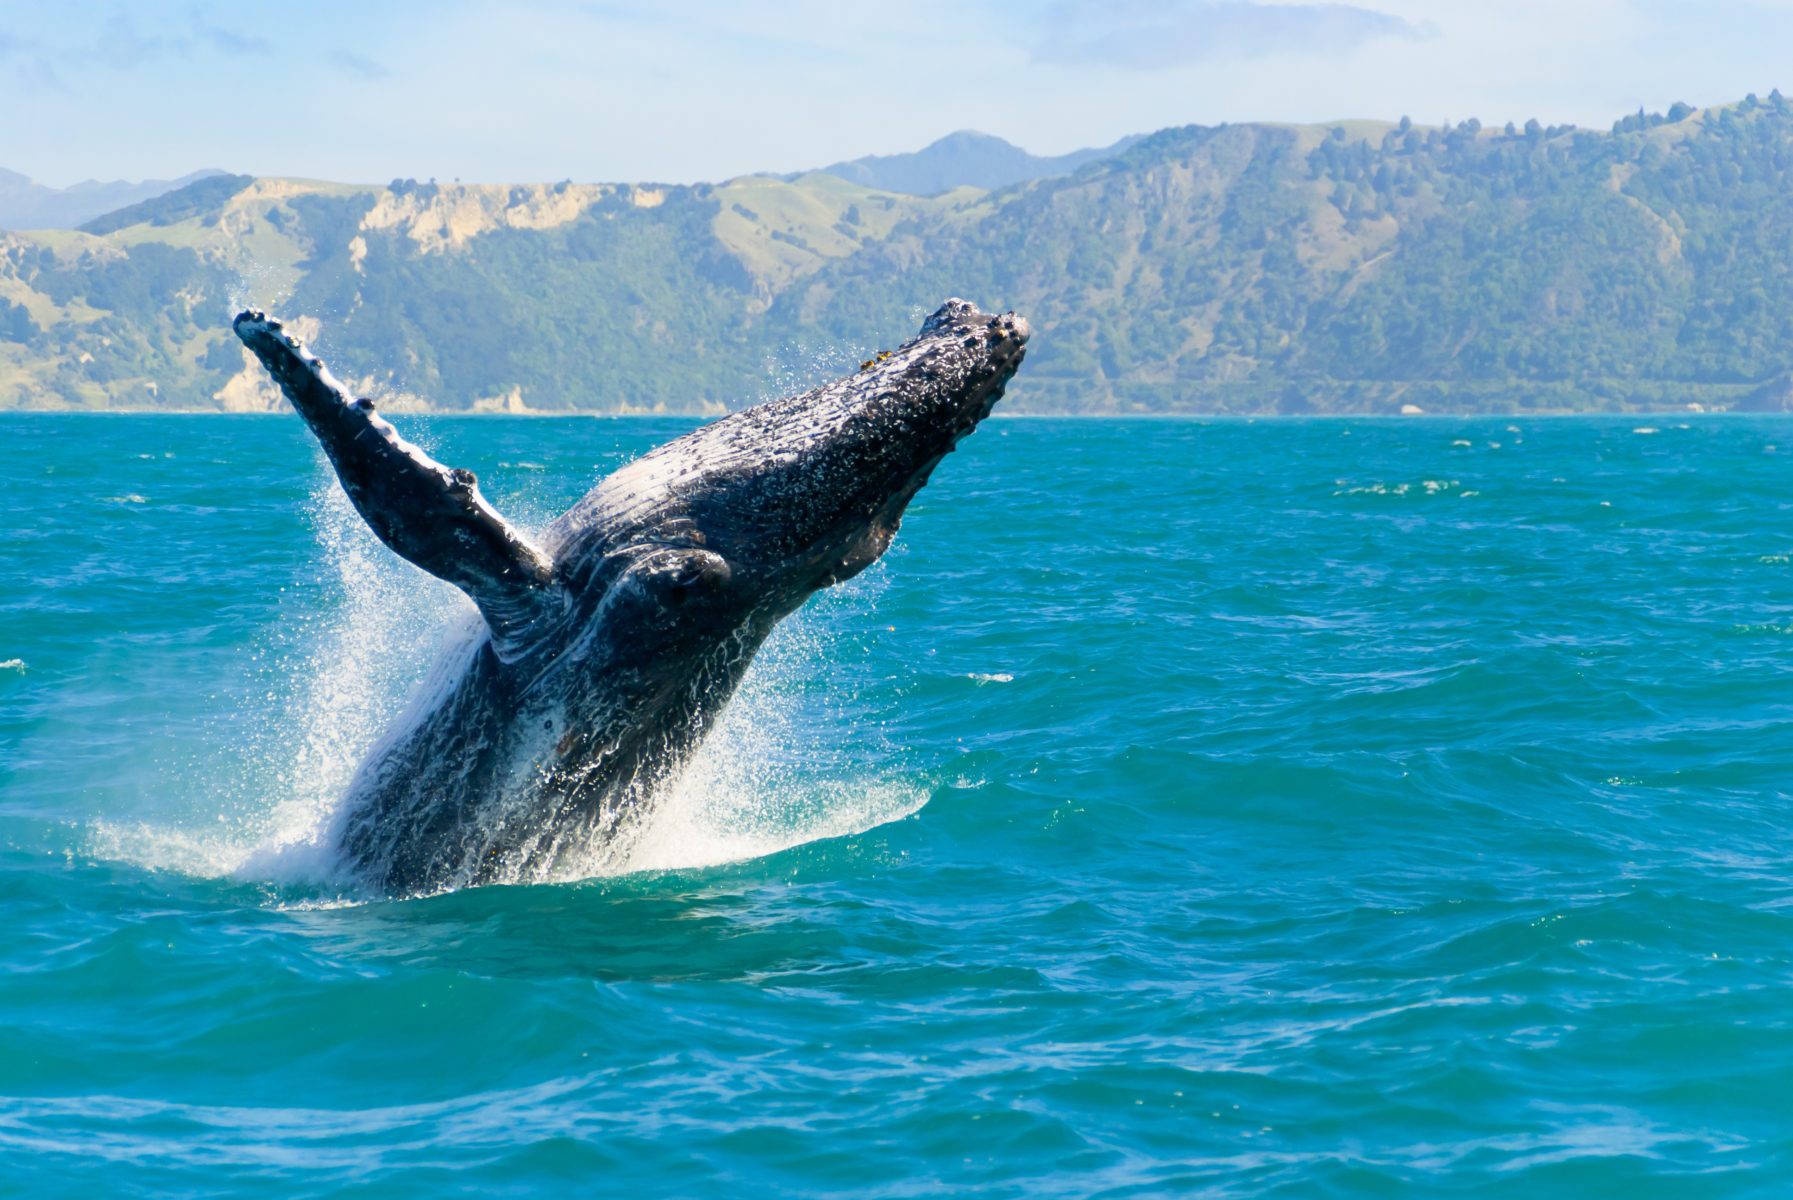 A large humpback whale breaching on the coast of Oahu